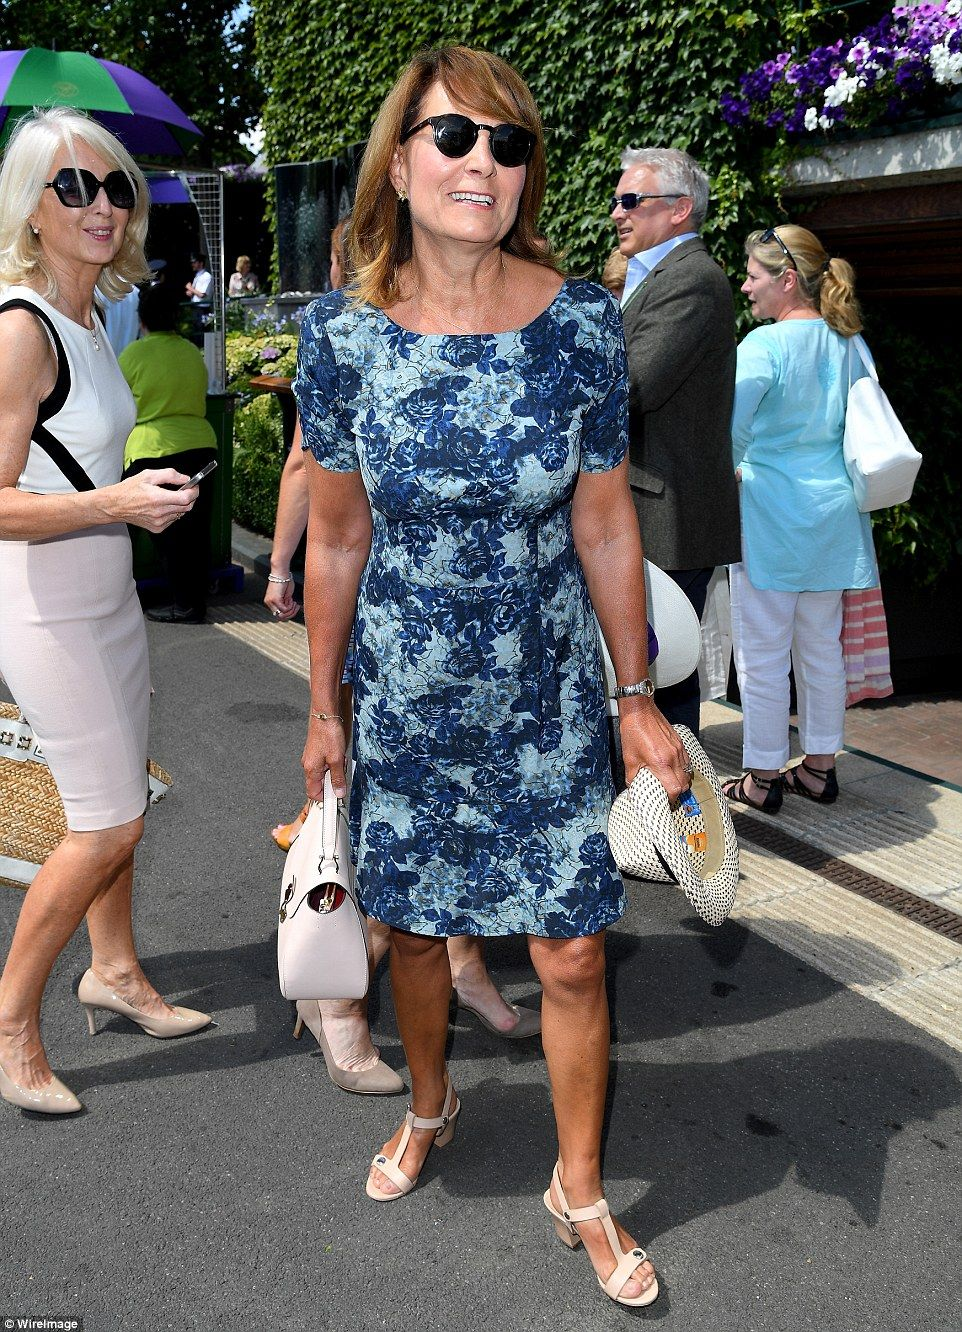 Carole Middleton keeps her cool at Wimbledon | Carole middleton